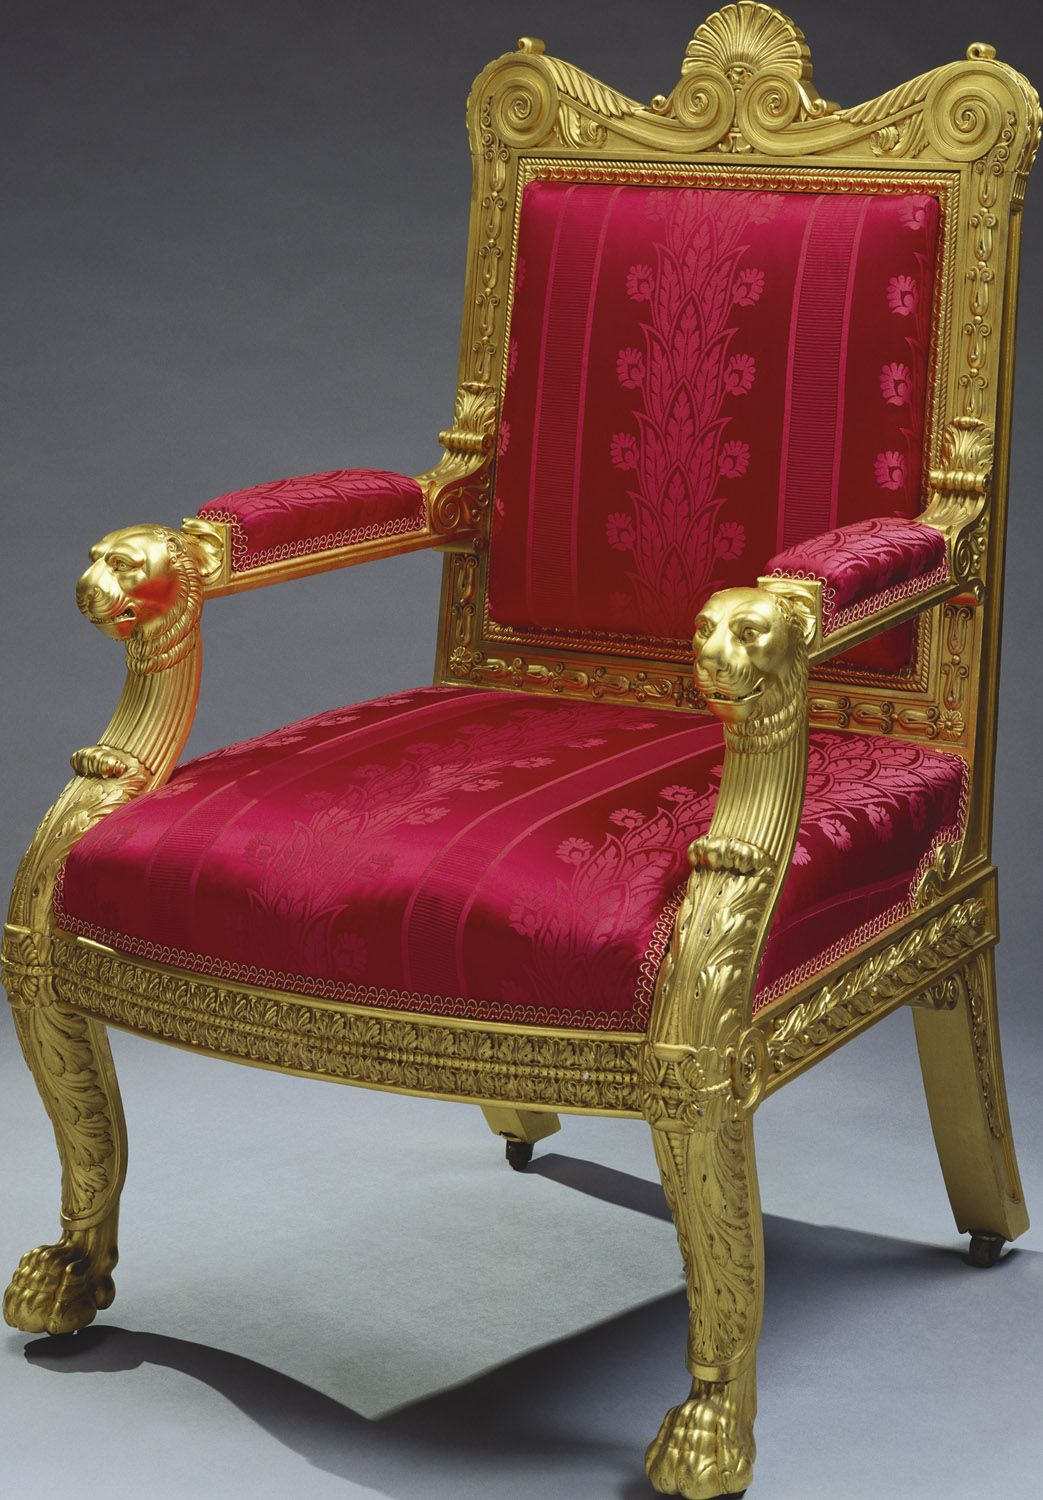 Pin By Cholan On Home And Interior In 2020 Armchair Royal Chair Antique Furniture